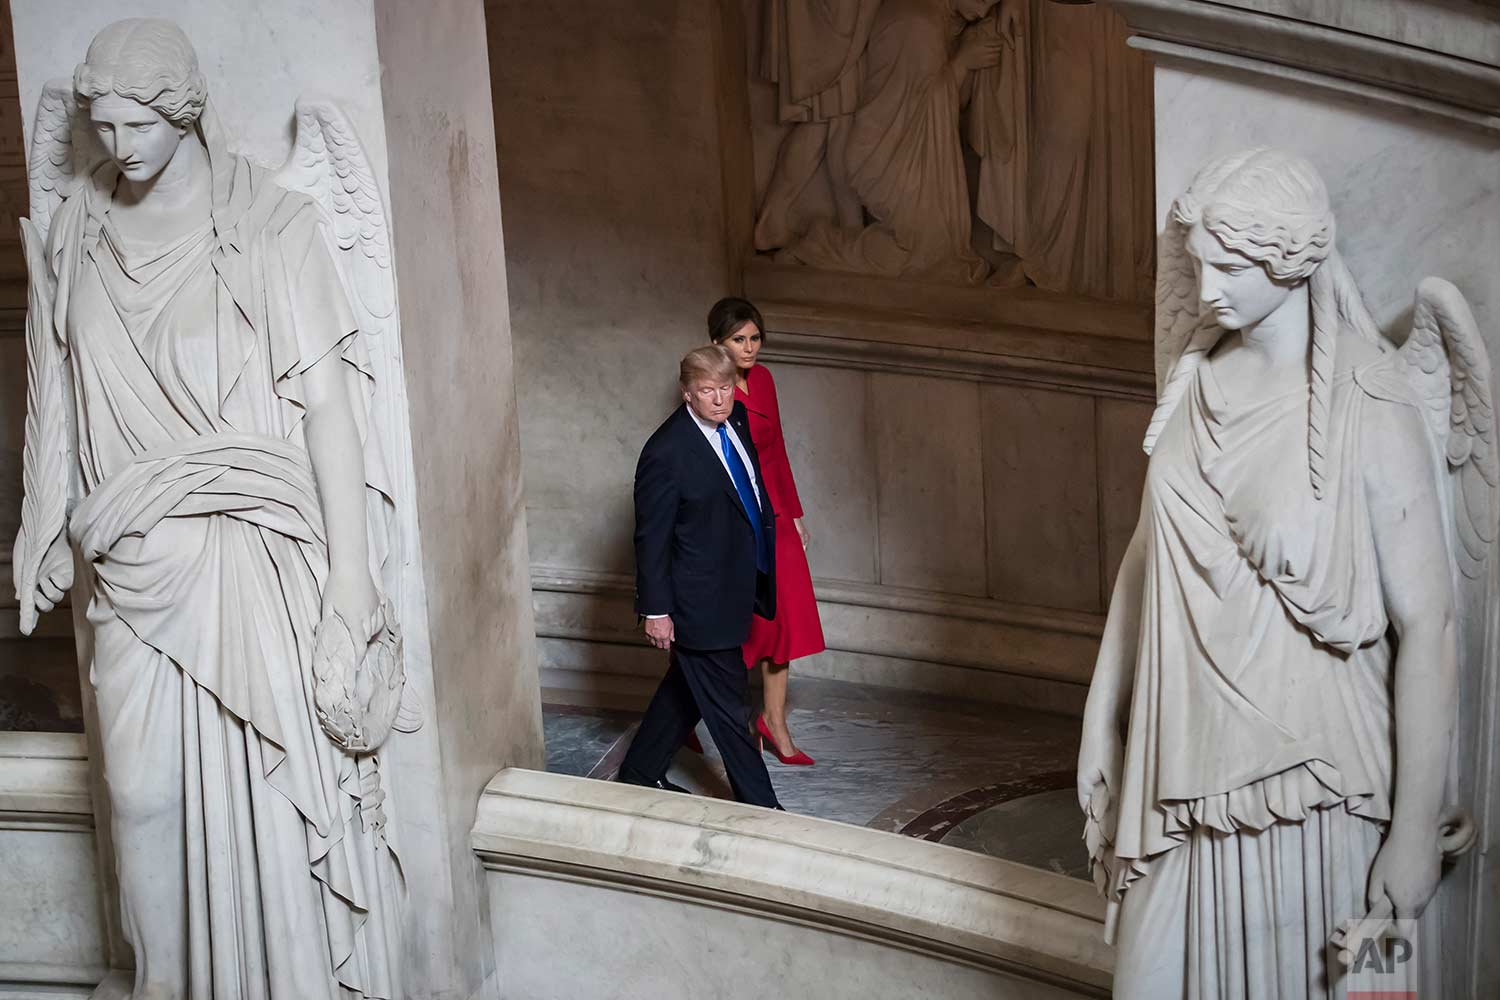 U.S President Donald Trump and first lady Melania Trump tour Napoleon's Tomb at Les Invalides museum in Paris, Thursday, July 13 2017. (Ian Langsdon/Pool via AP)